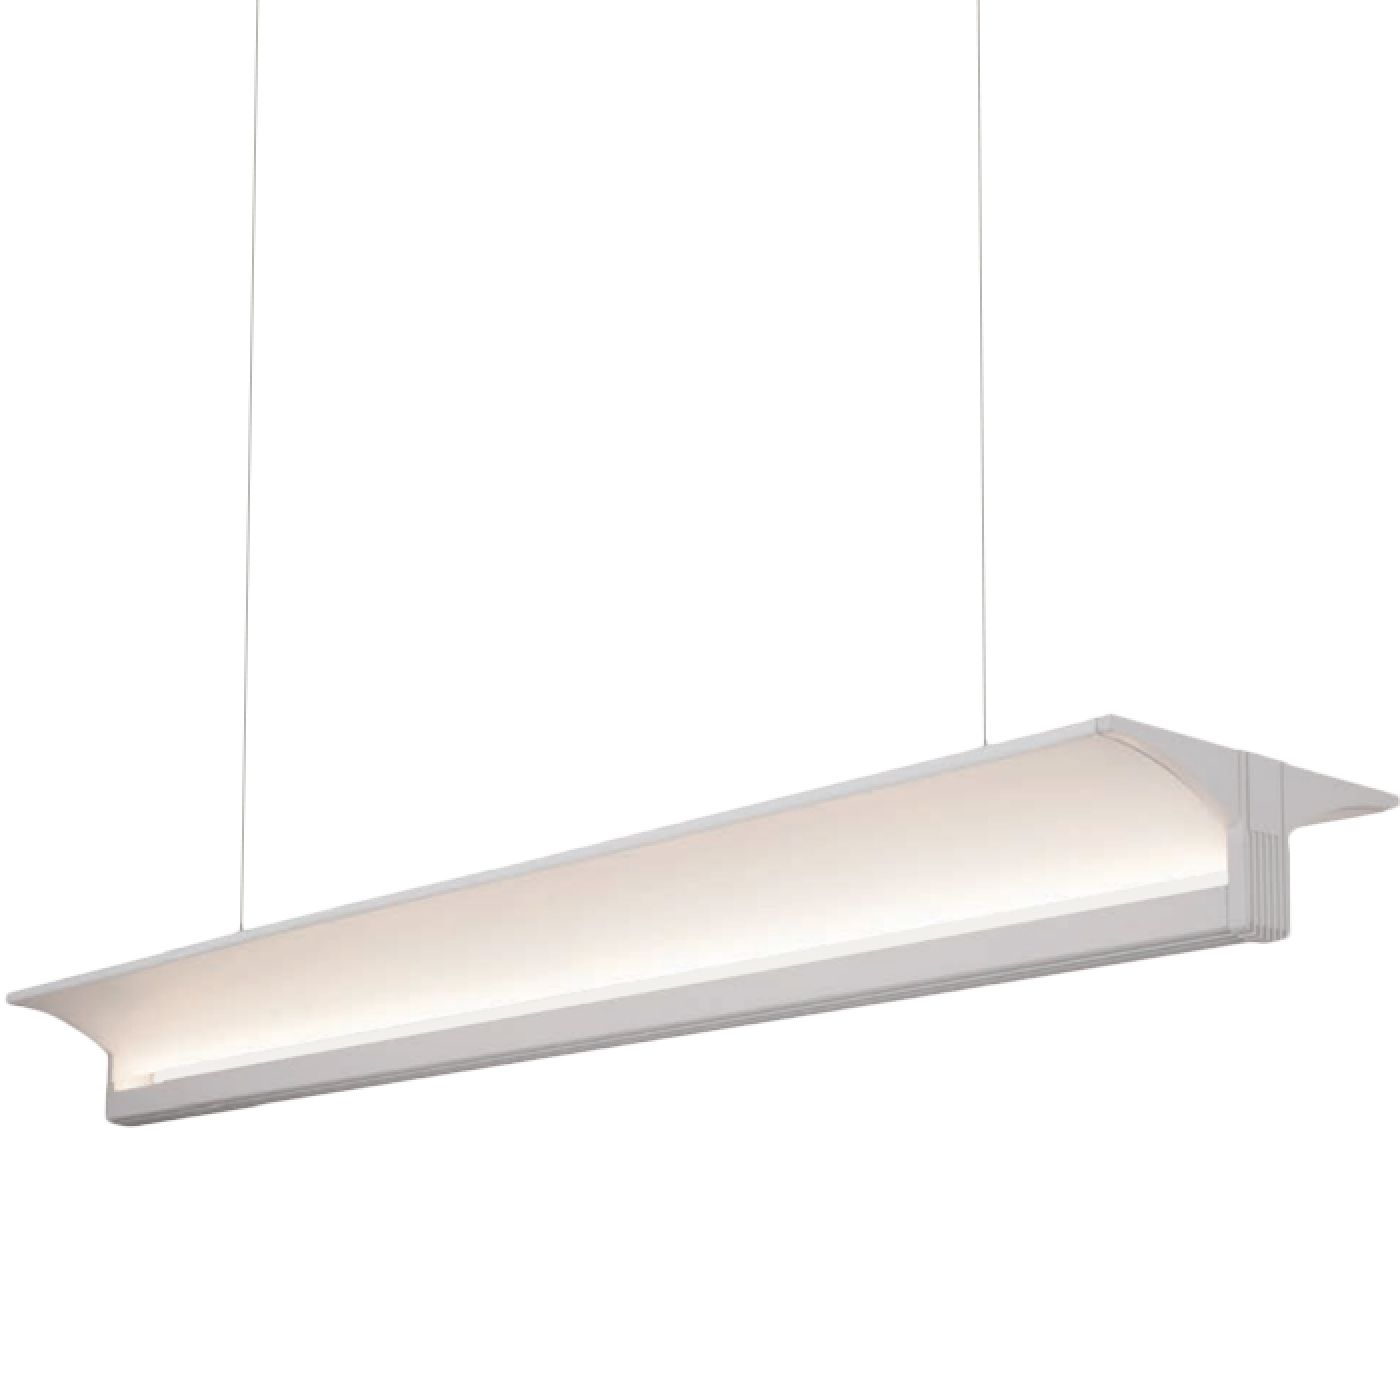 Alcon lighting 12126 tee beam architectural led linear suspended alcon lighting 12126 tee beam architectural led linear suspended pendant mount indirect up light fixture alconlighting arubaitofo Gallery